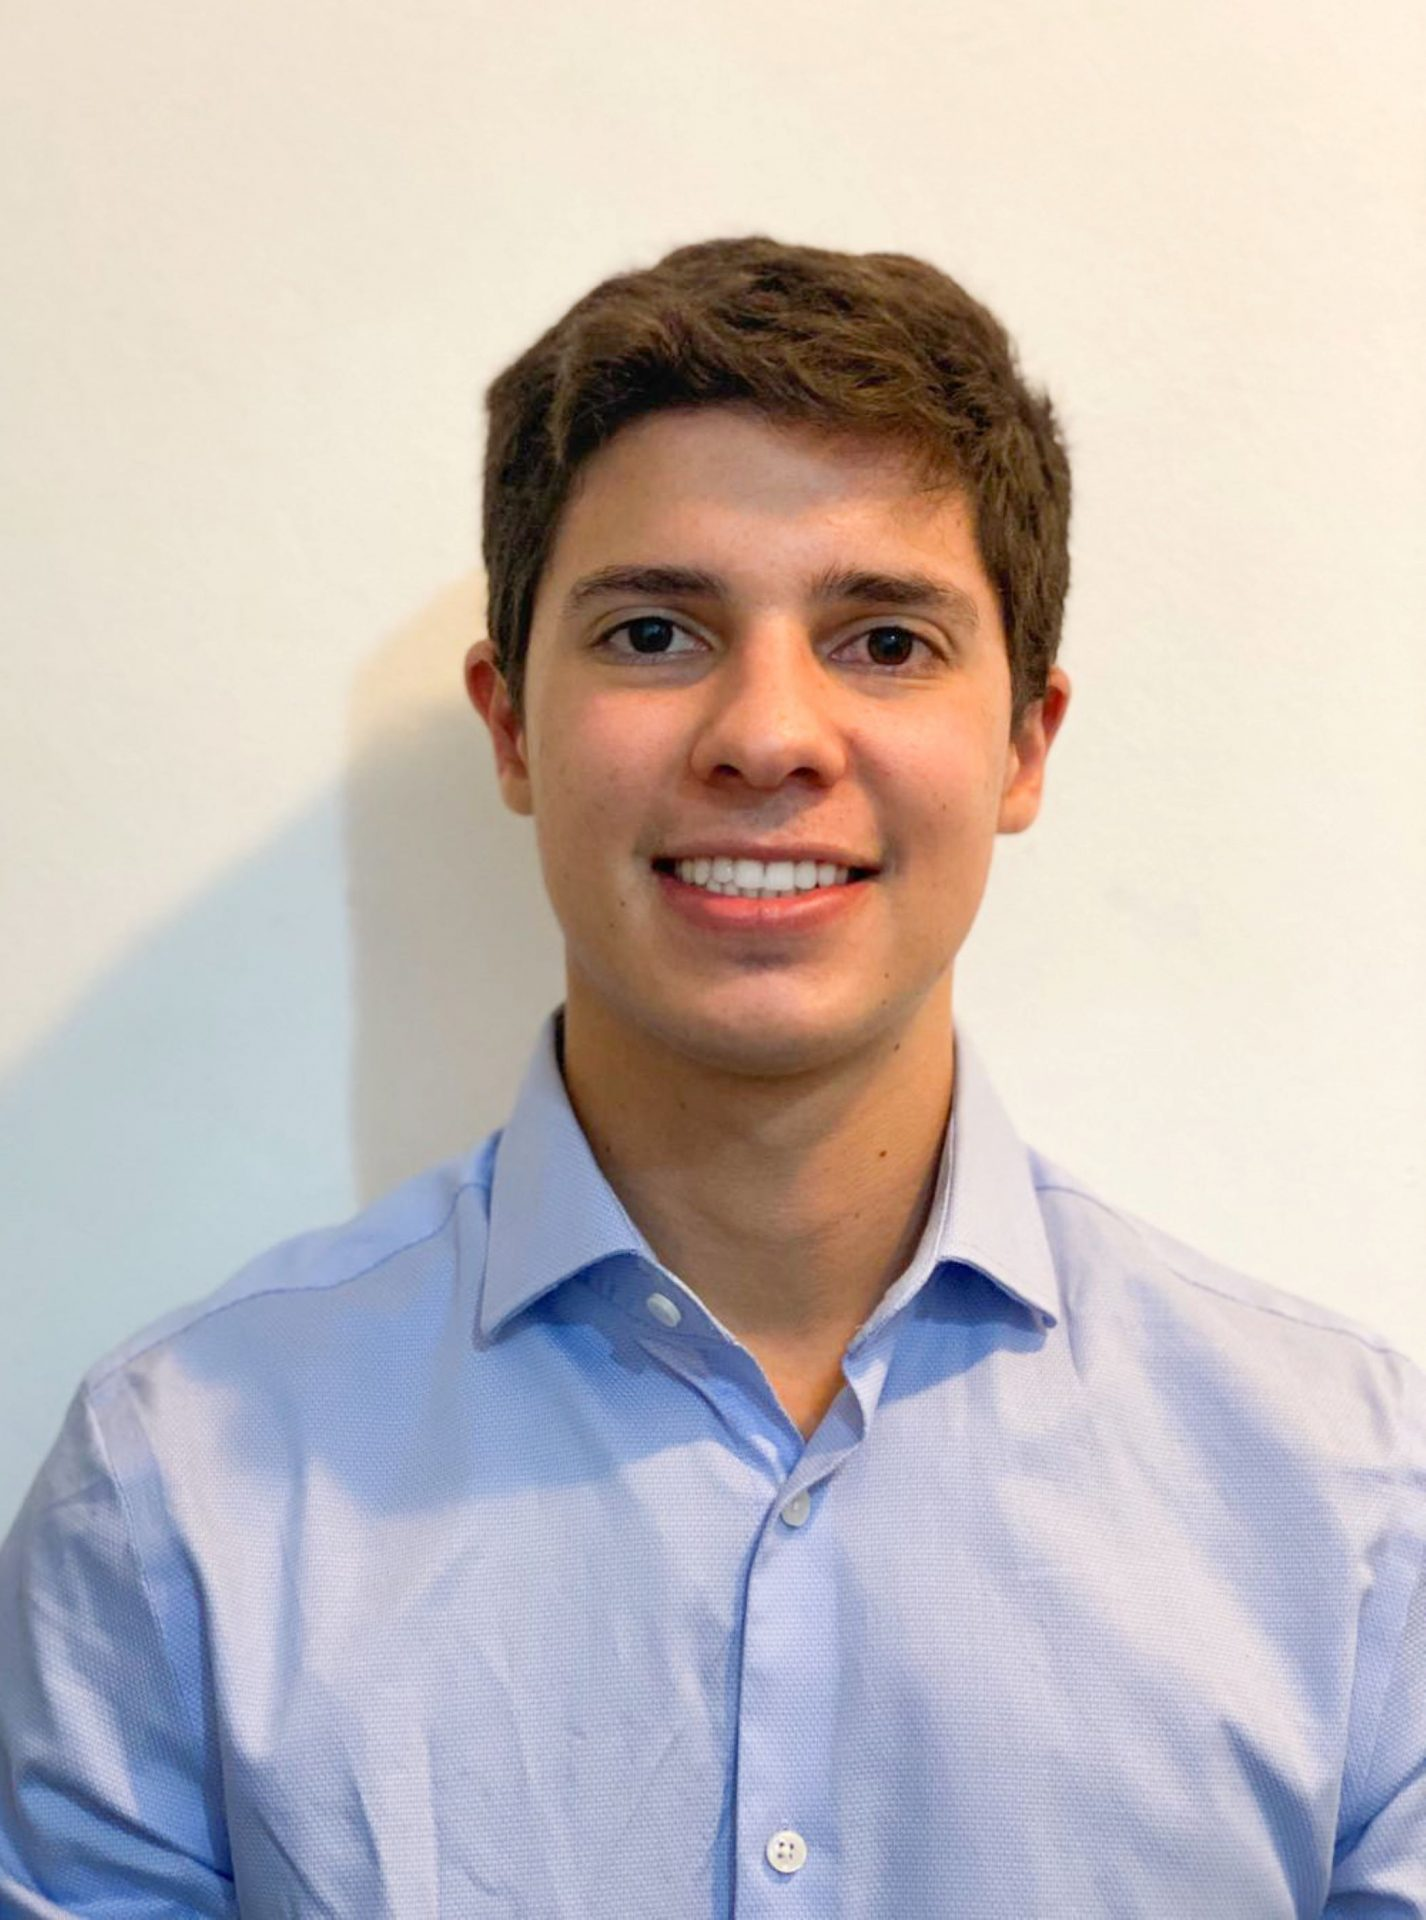 Enzo Duarte Garcia Costa Silva is entering his junior year in Industrial Engineering and Economics at Penn State. The new restrictions would prevent him from returning to the United States from Brazil, where he has been staying with his family.